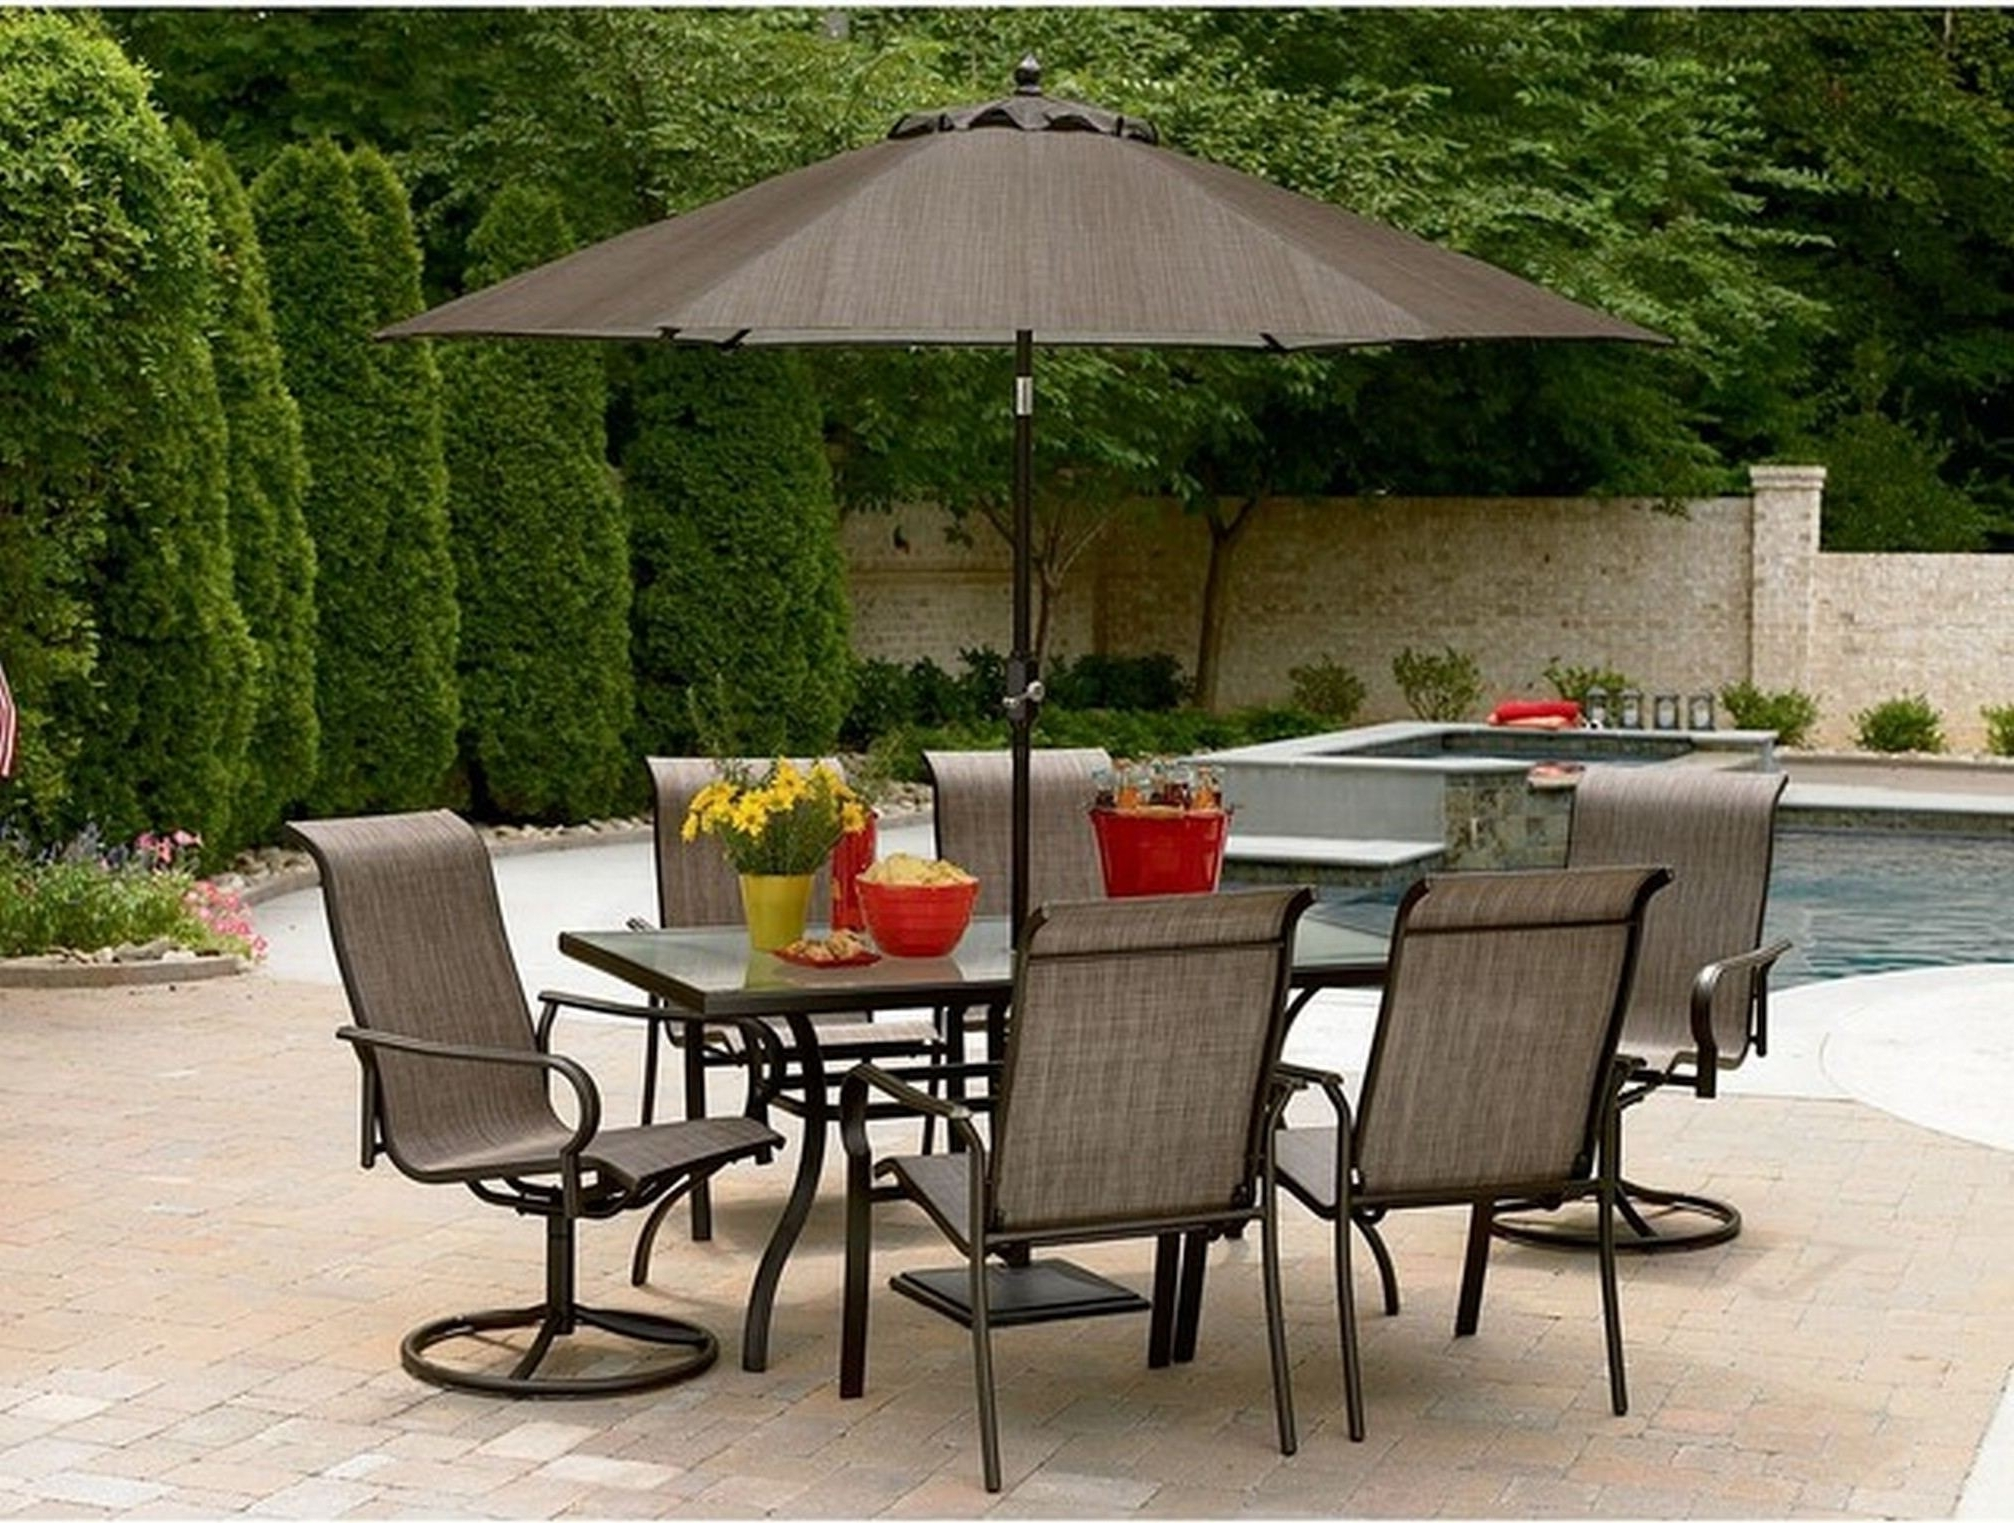 Interior : Patio Furniture Sale Stylish Outdoor Table Sets Lovely Intended For Trendy Patio Table Sets With Umbrellas (View 18 of 20)